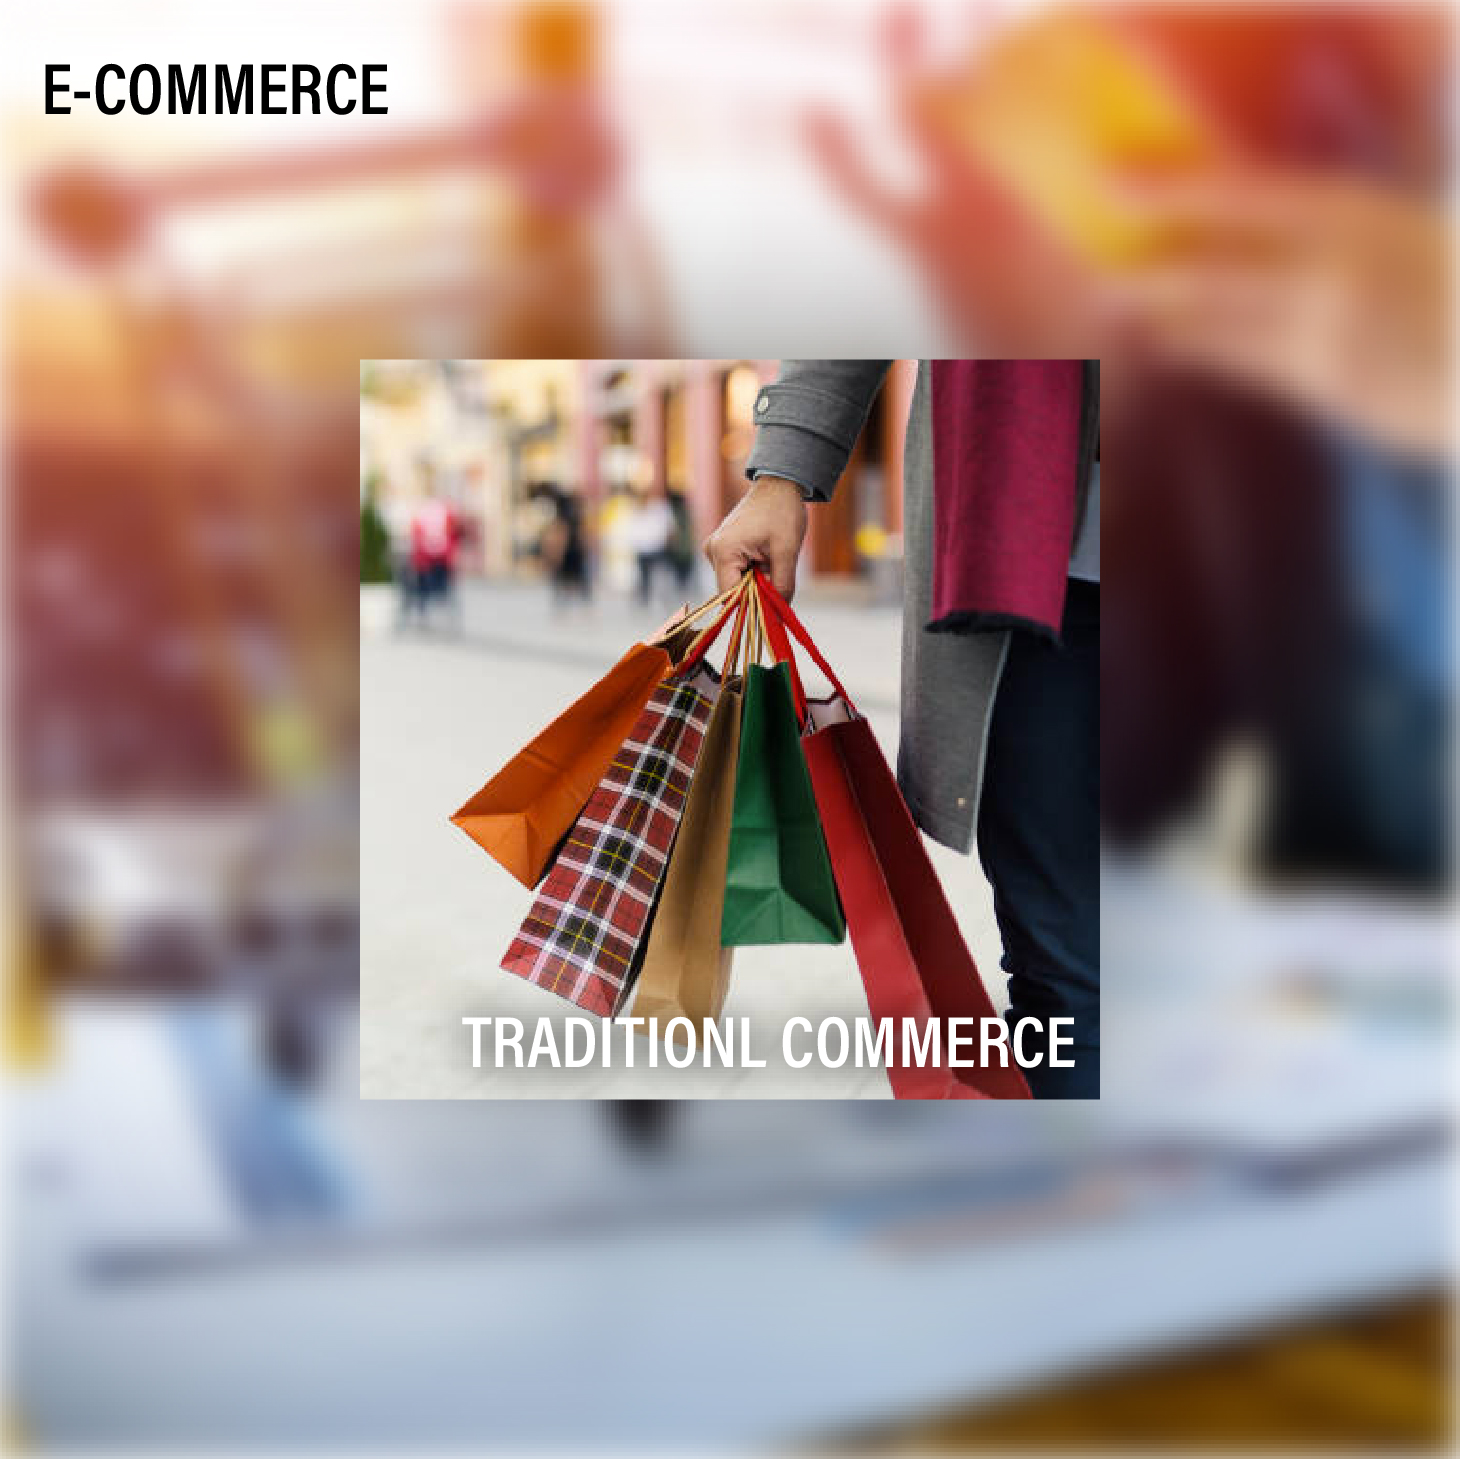 eCommerce Different from Traditional Commerce